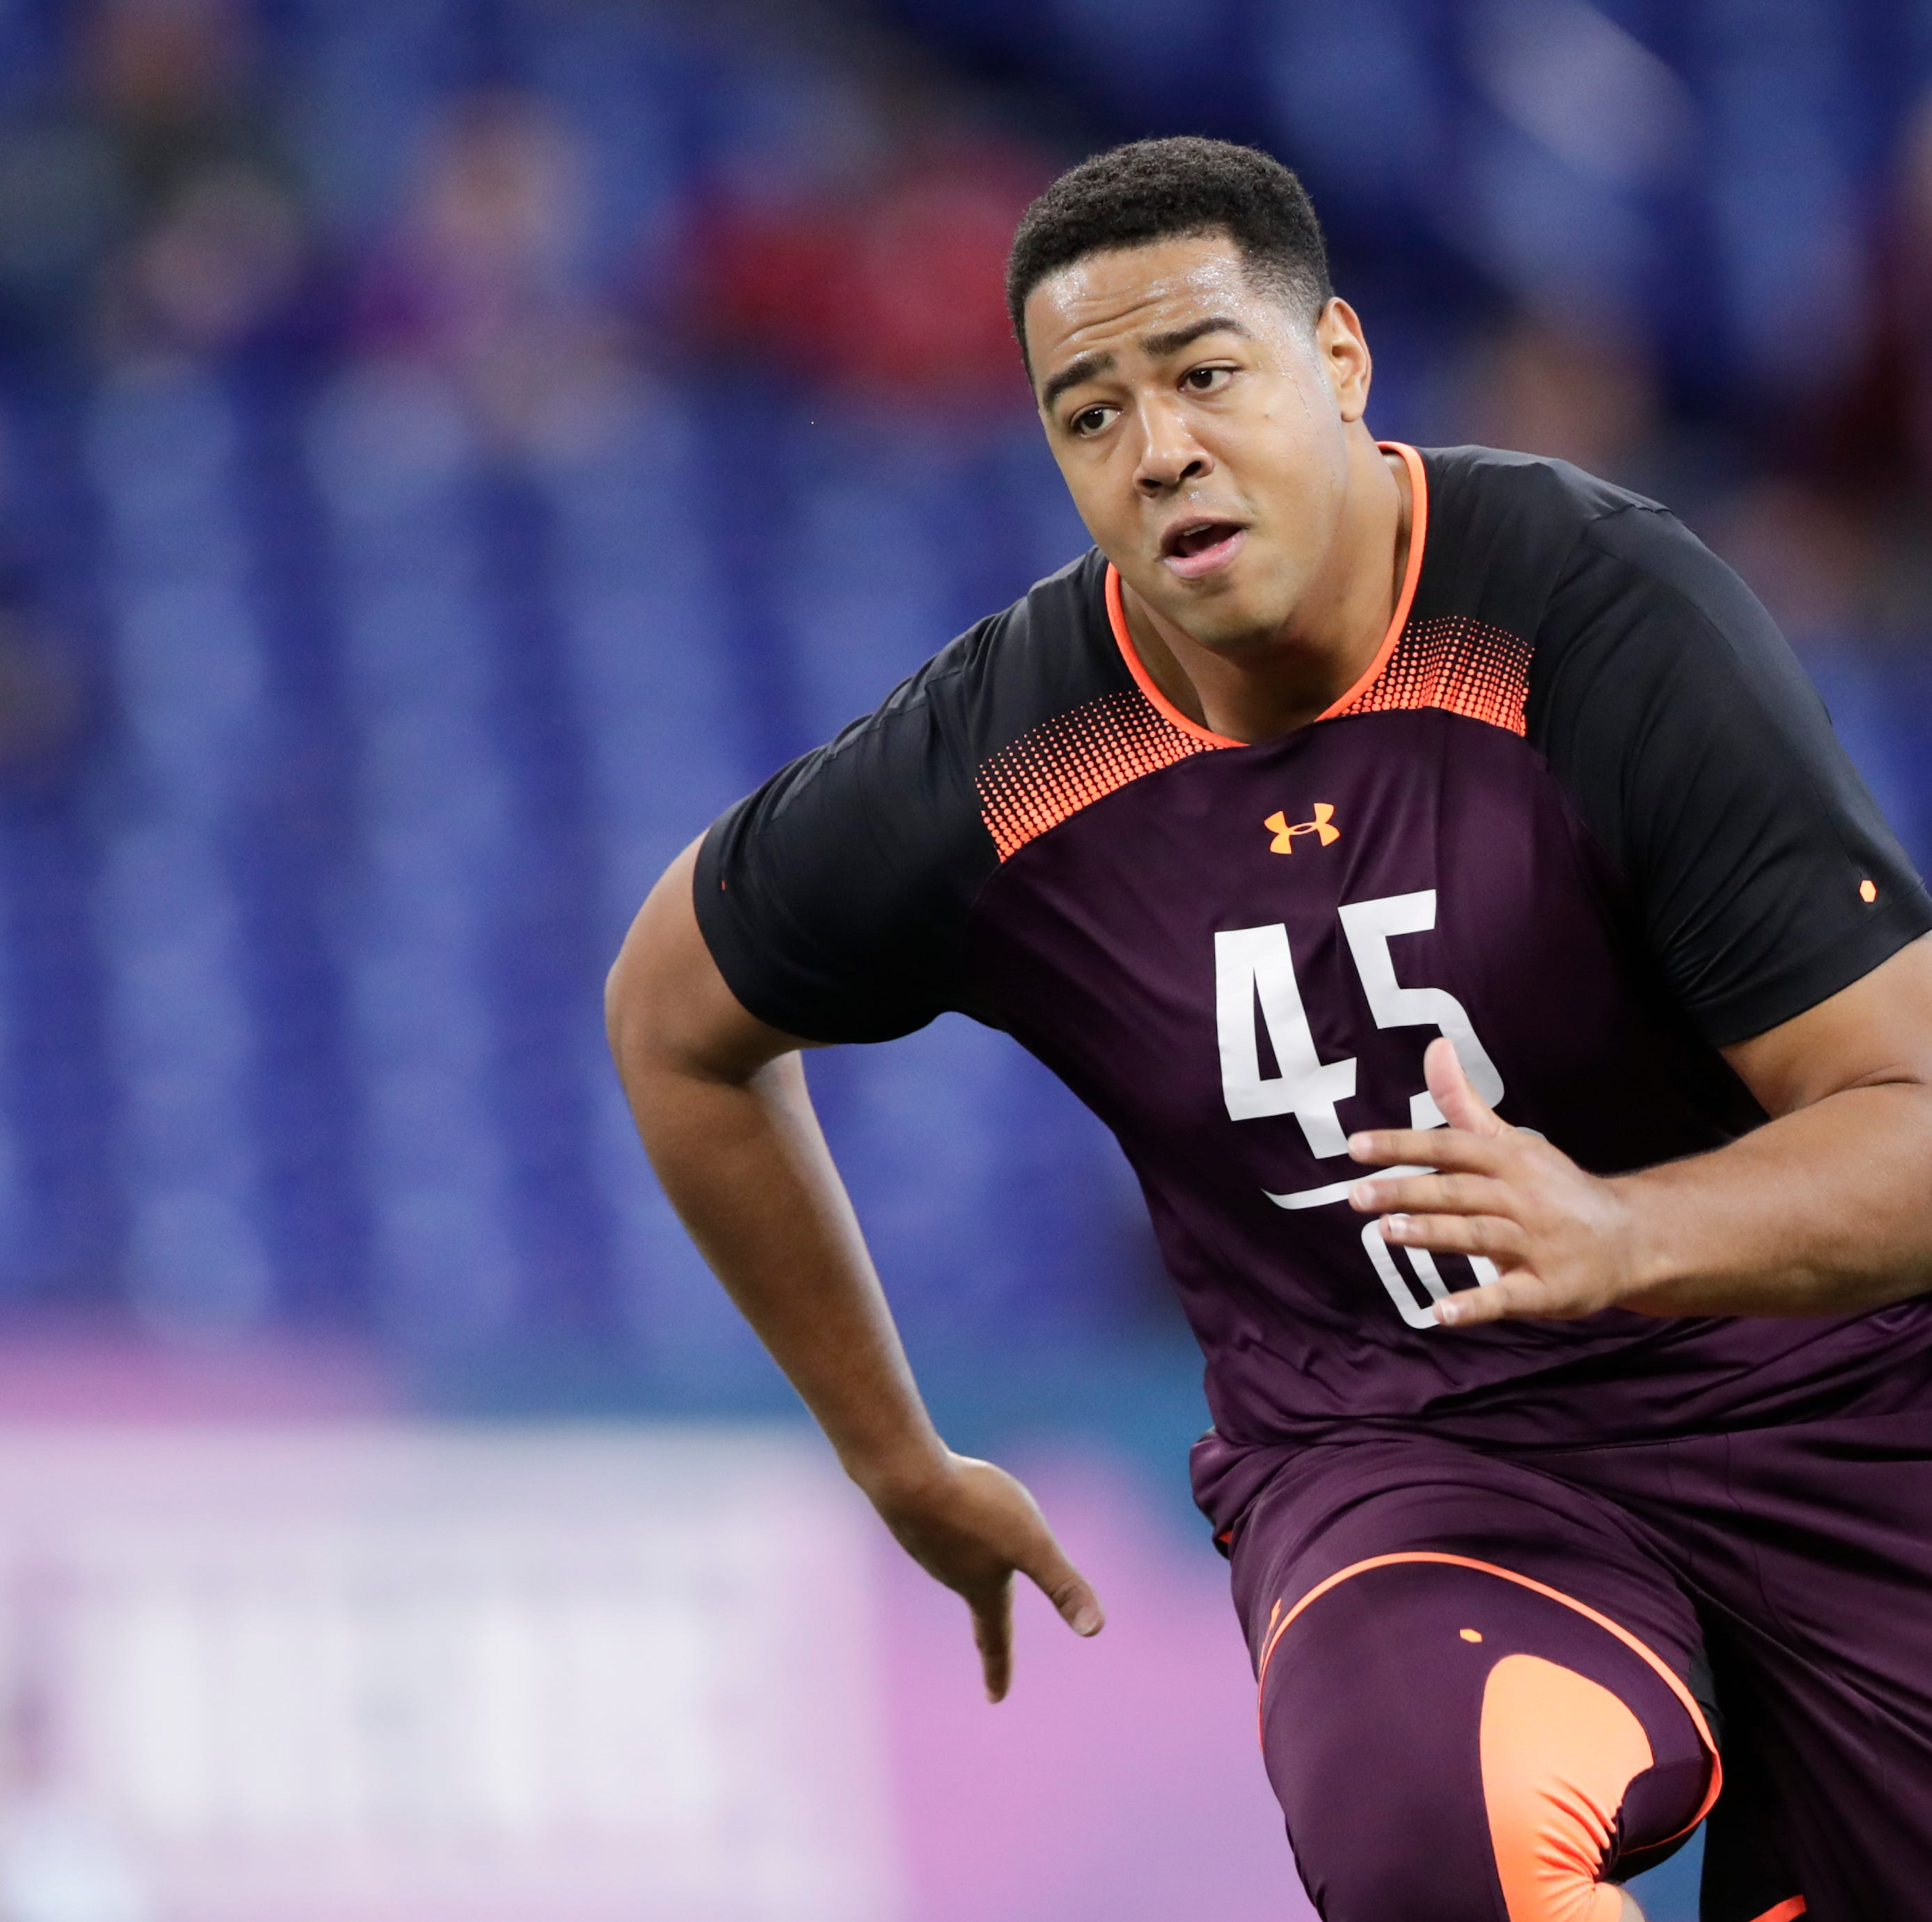 Trey Pipkins: 4 things to know on 2019 NFL Draft prospect, Sioux Falls tackle